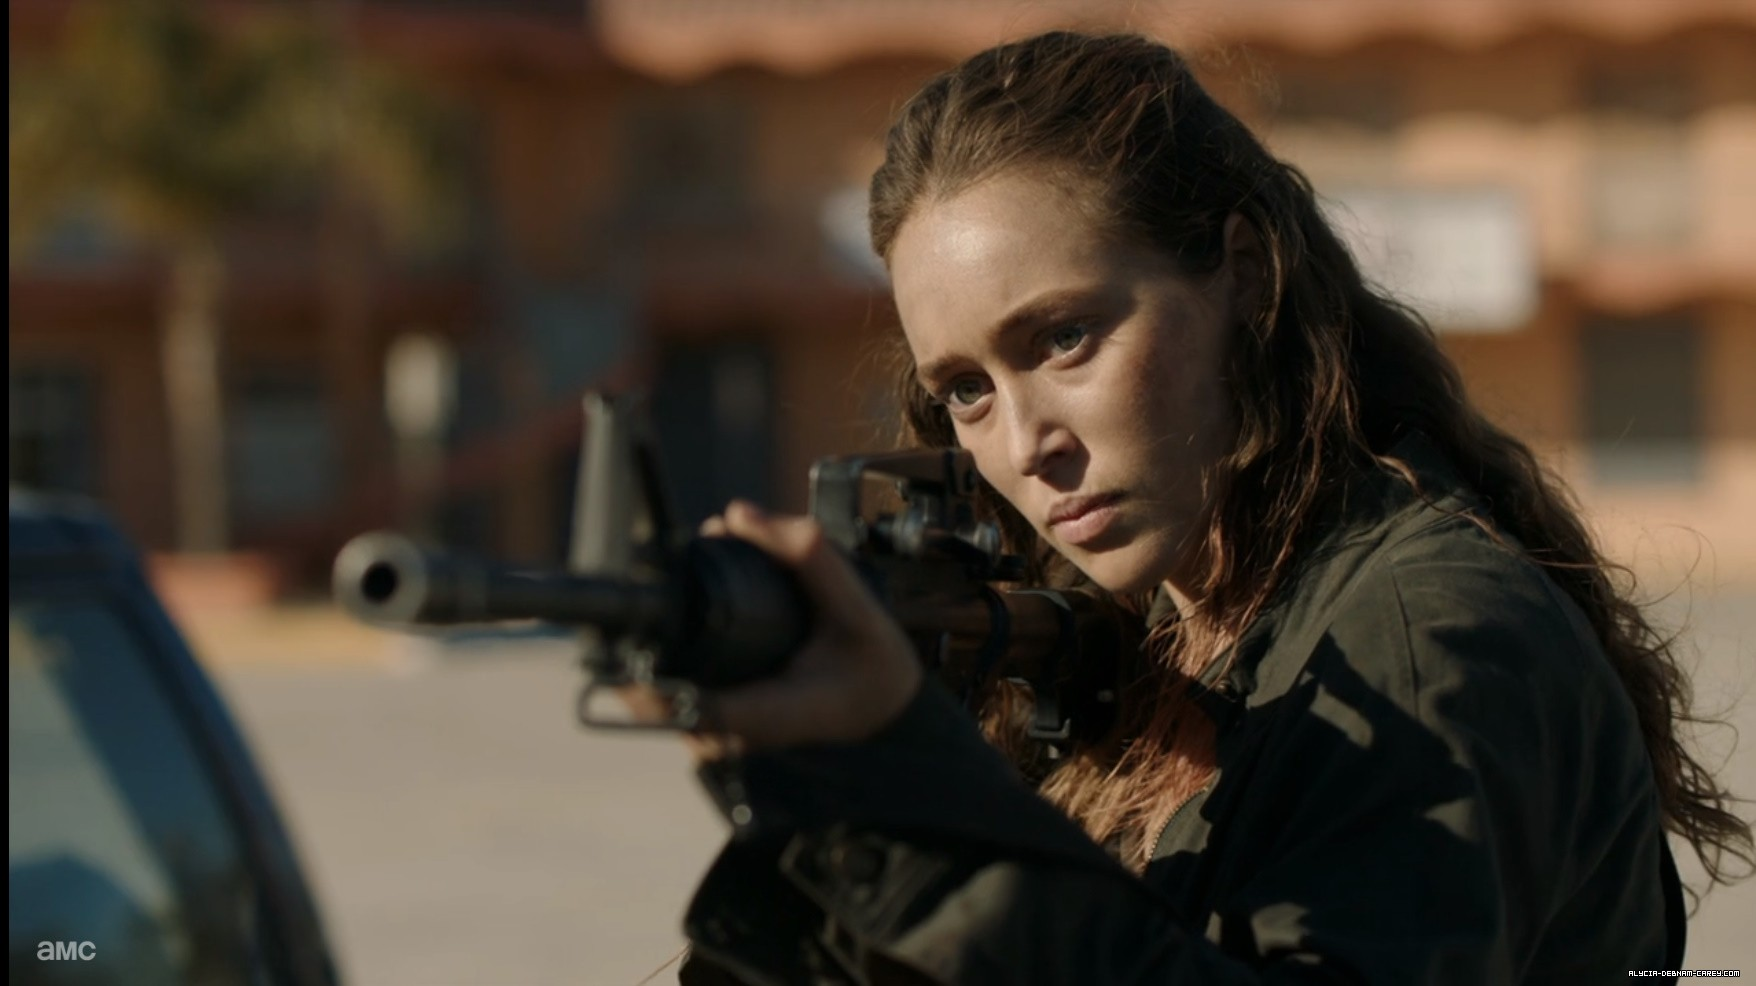 Photos: 'Fear the Walking Dead' Season 3 Screencaps